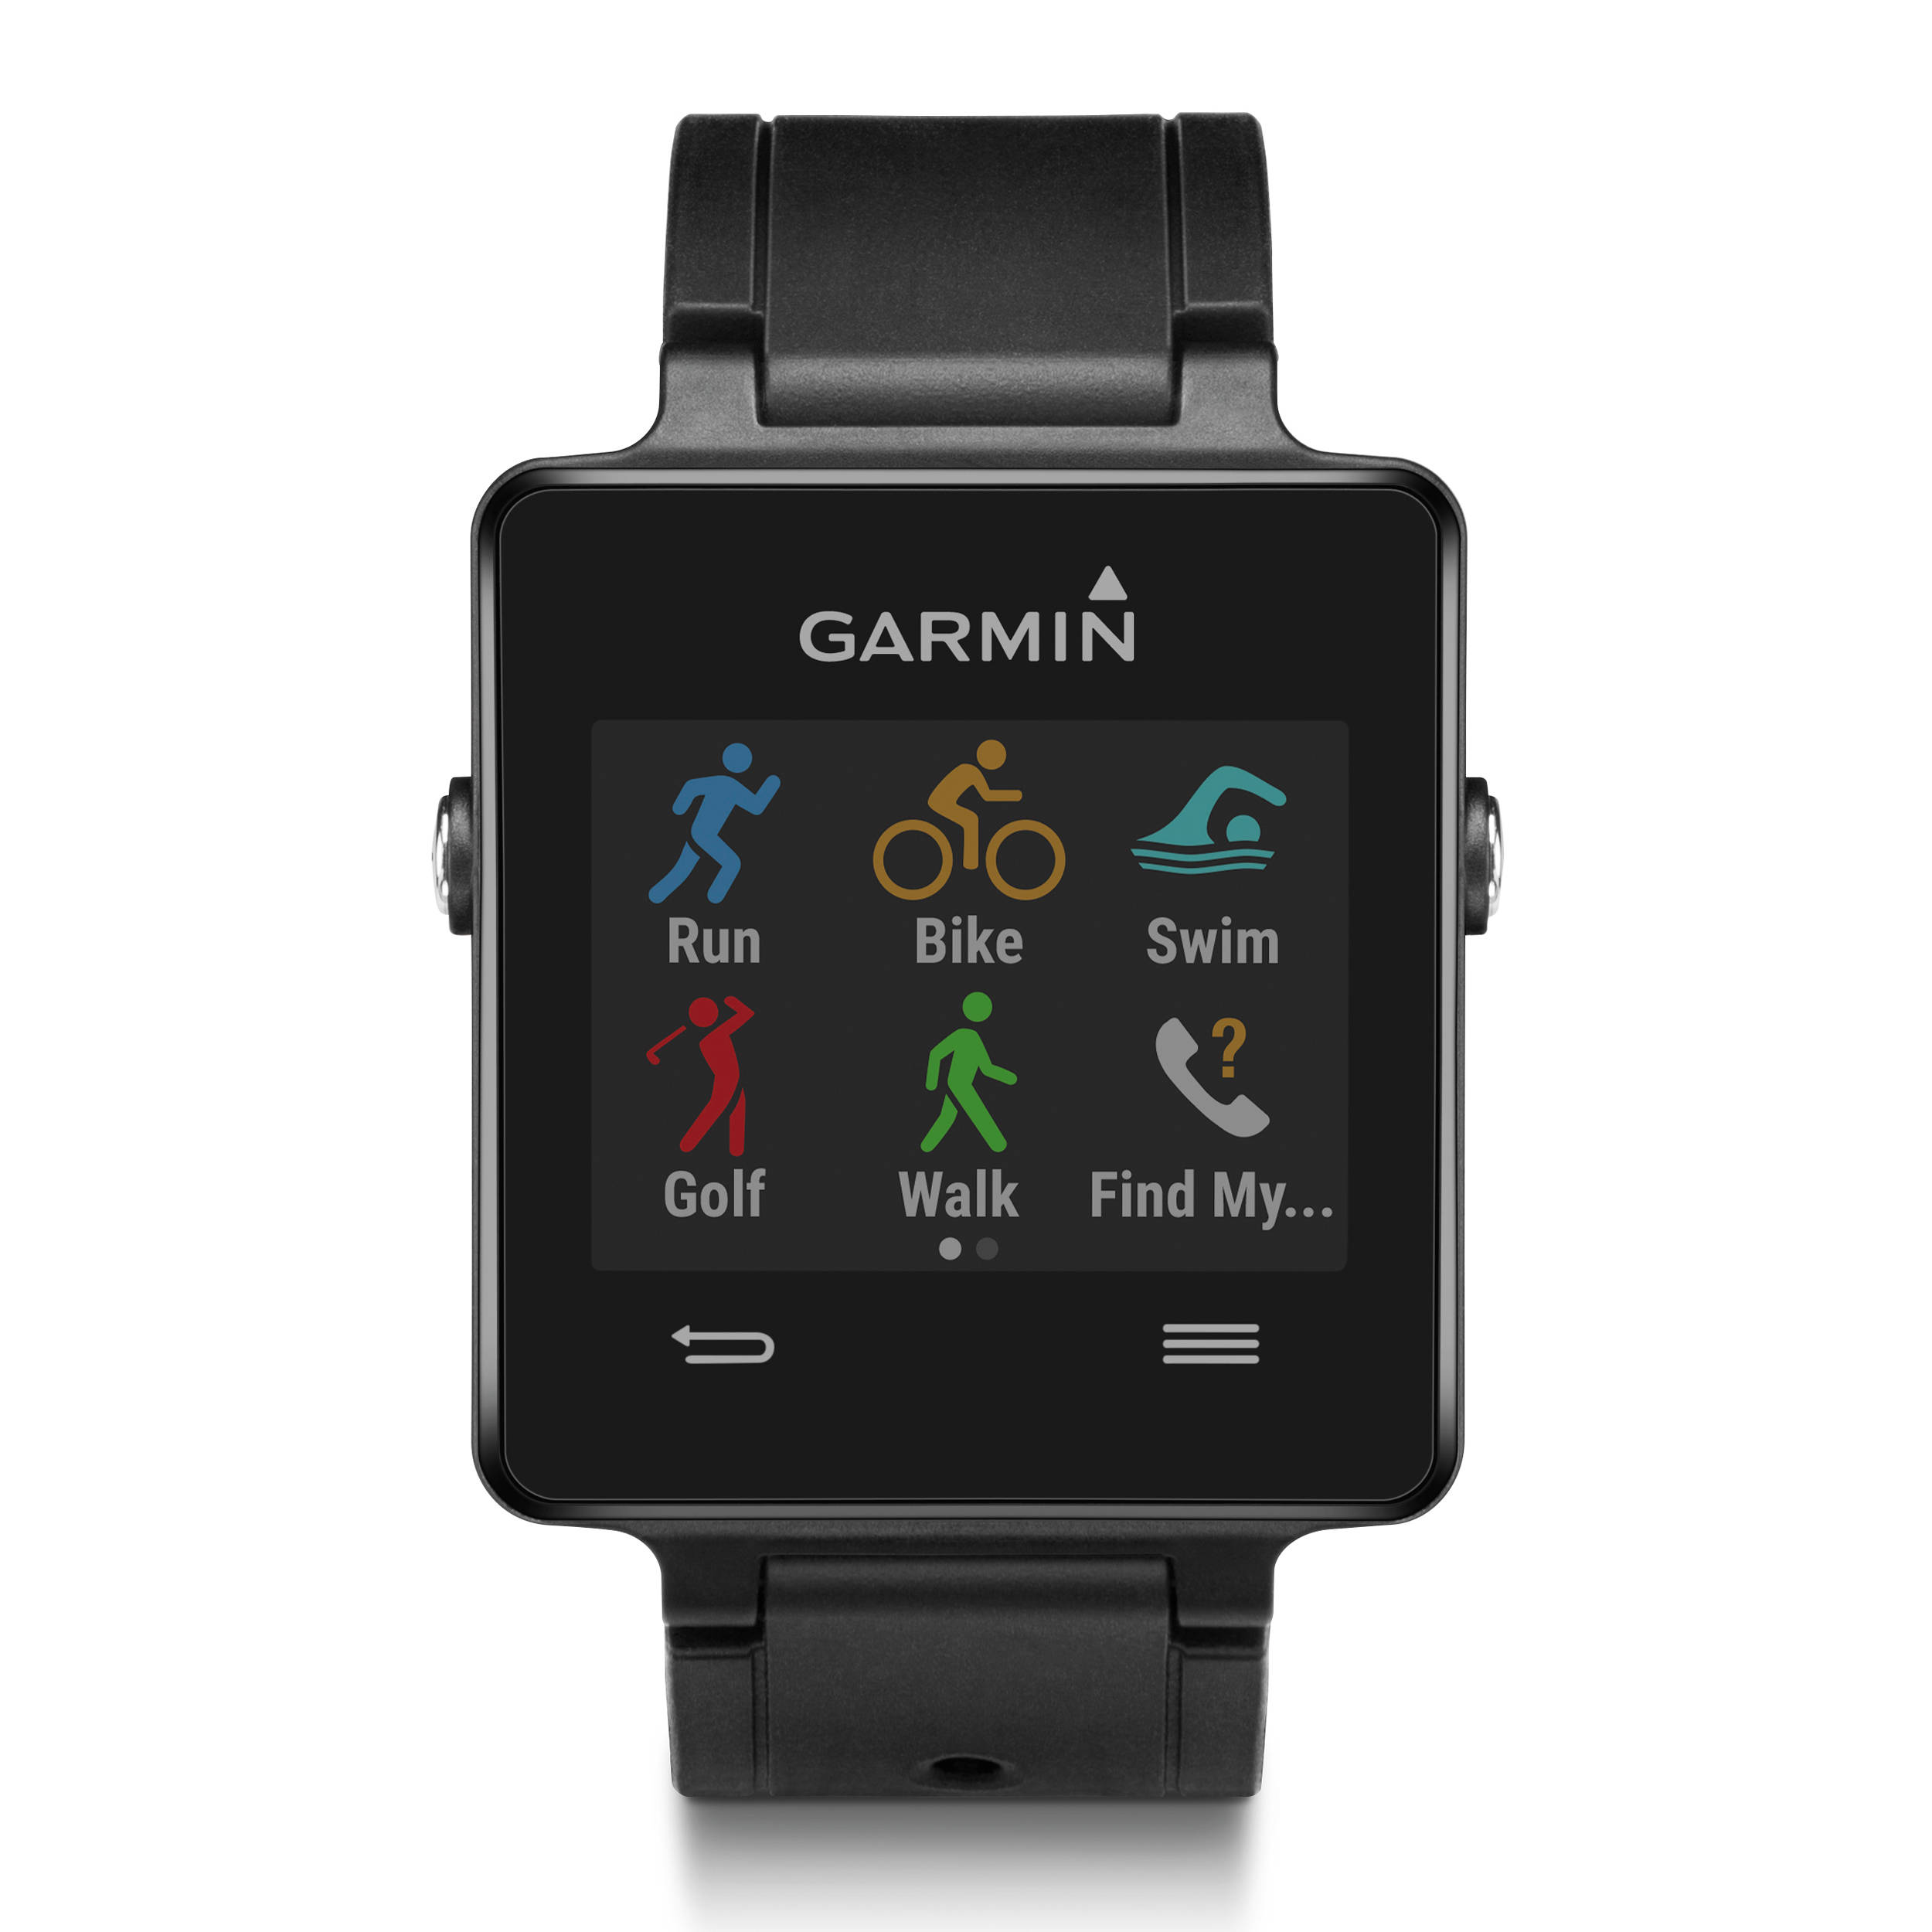 Garmin vivoactive Sport Watch (Black)